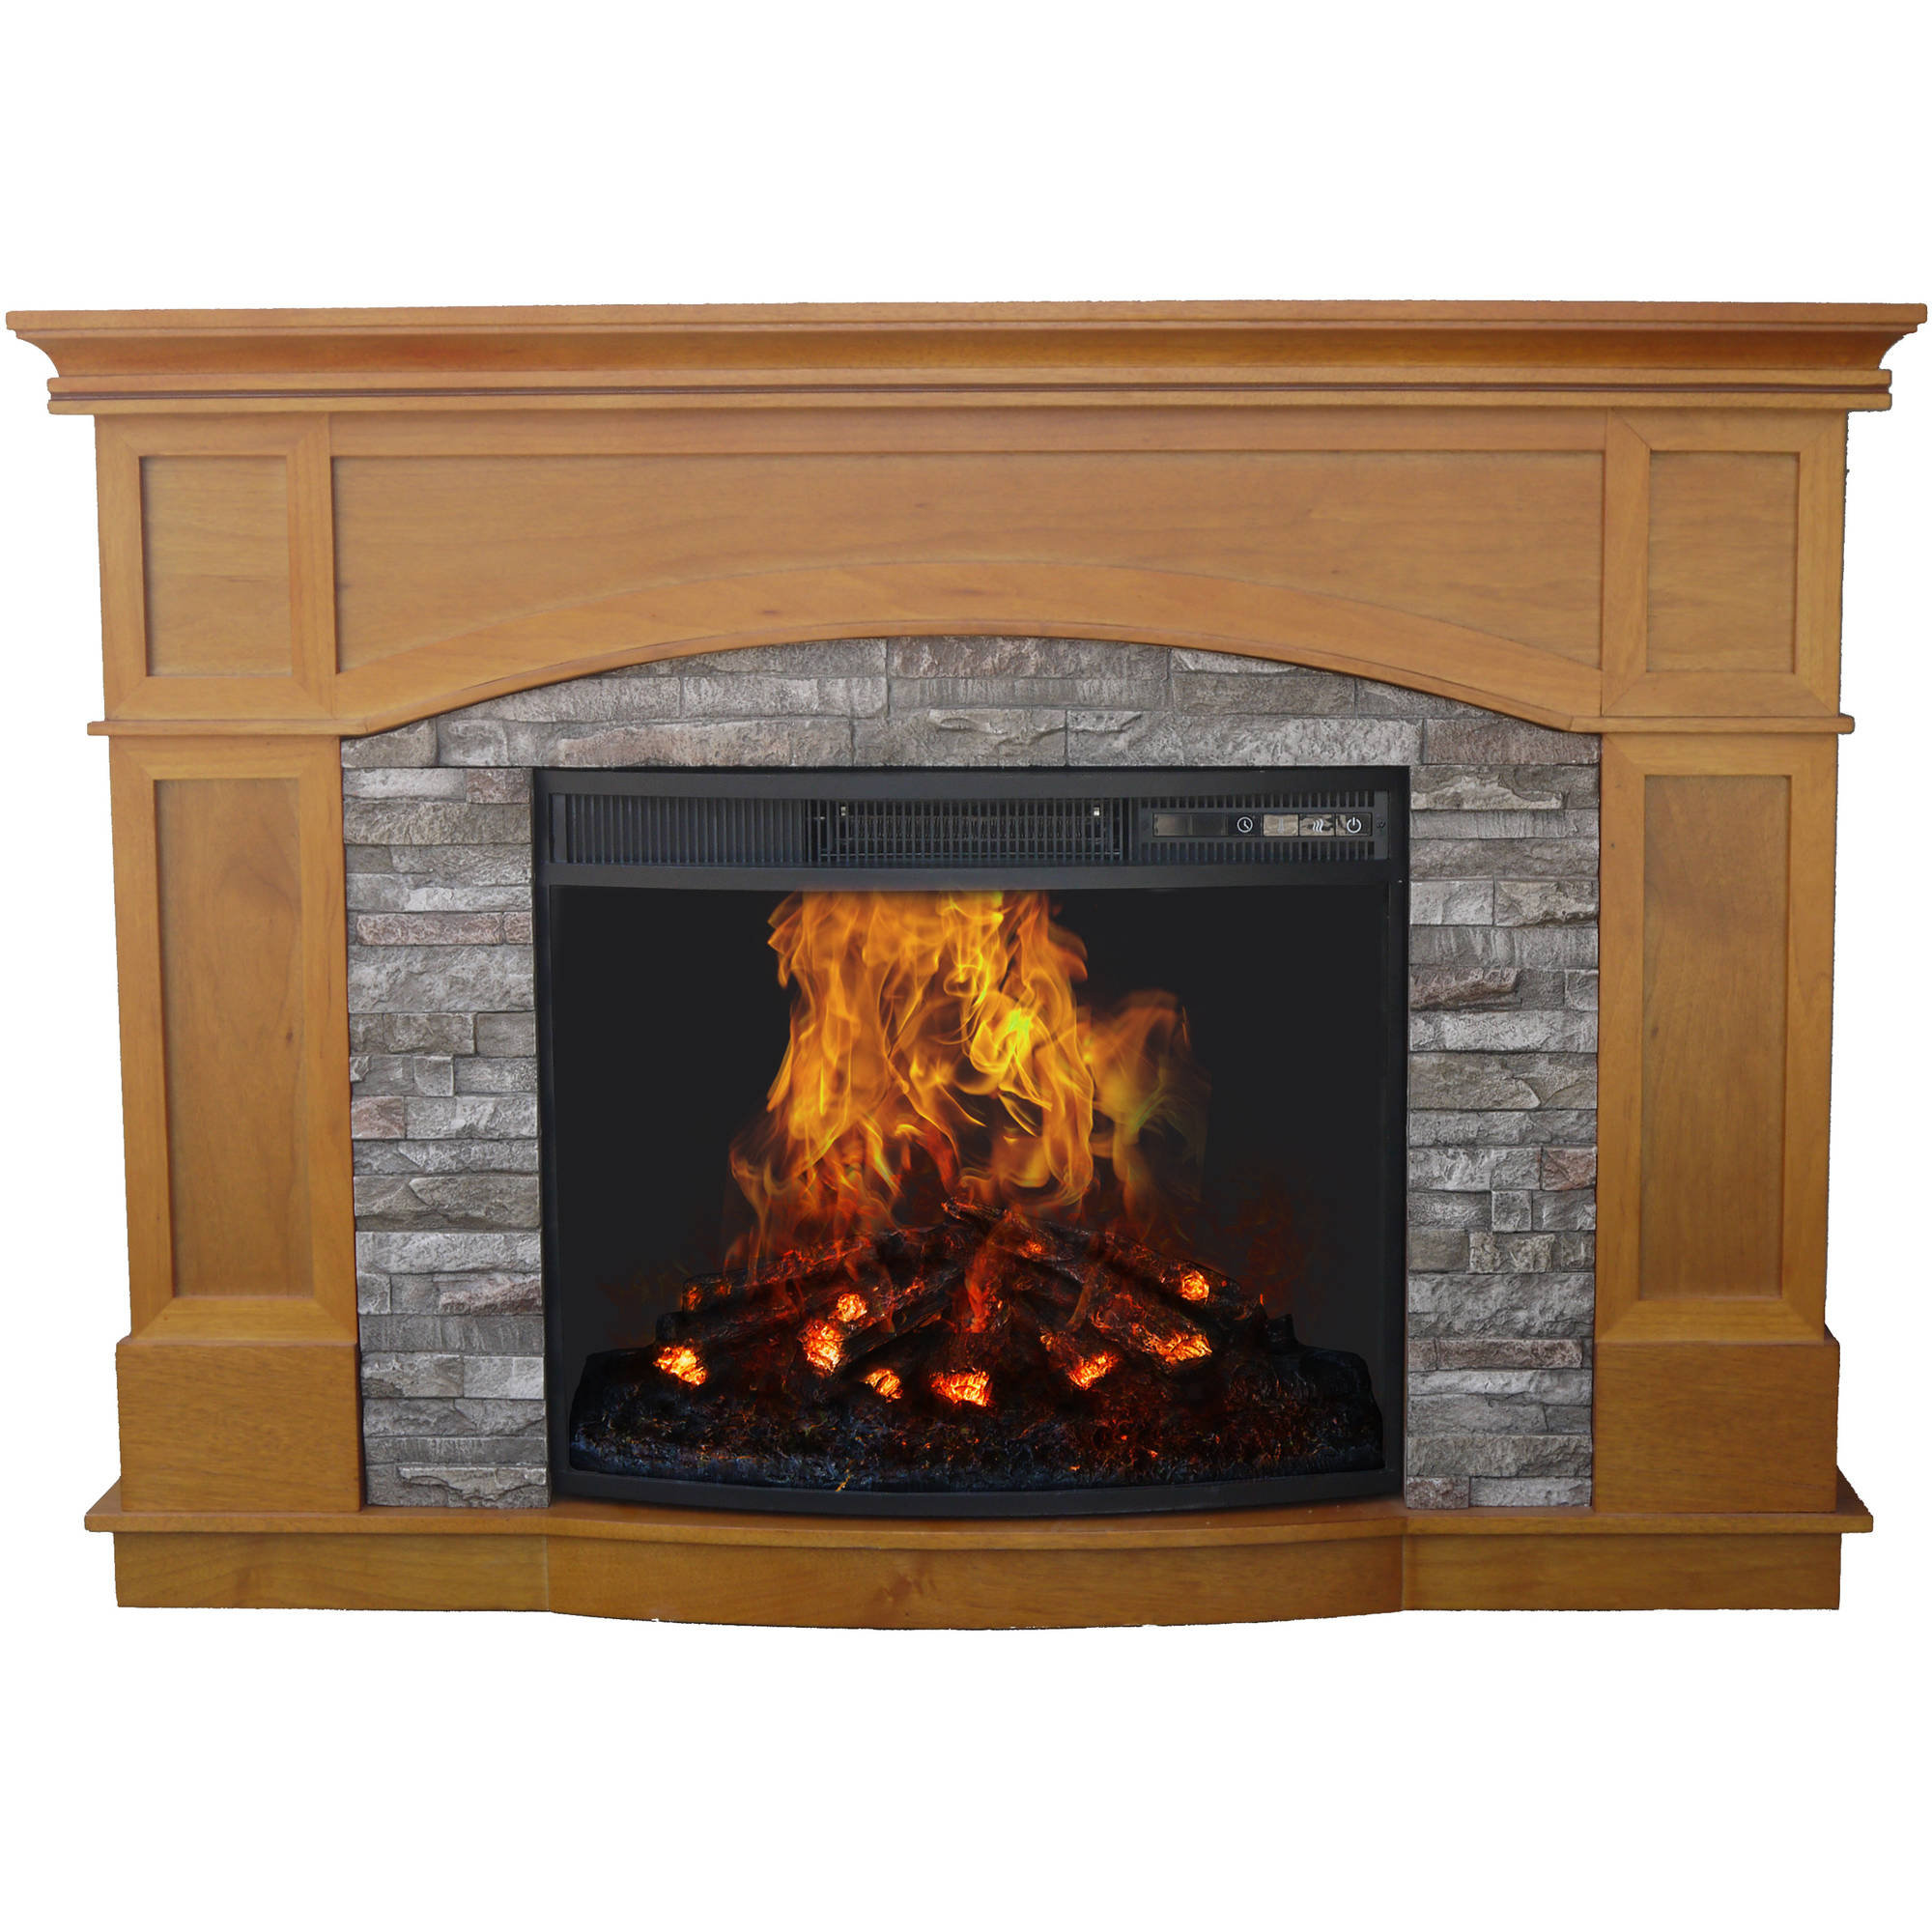 stand samples for fireplace ideas pictures electric sale tv cheap and fireplaces on collection